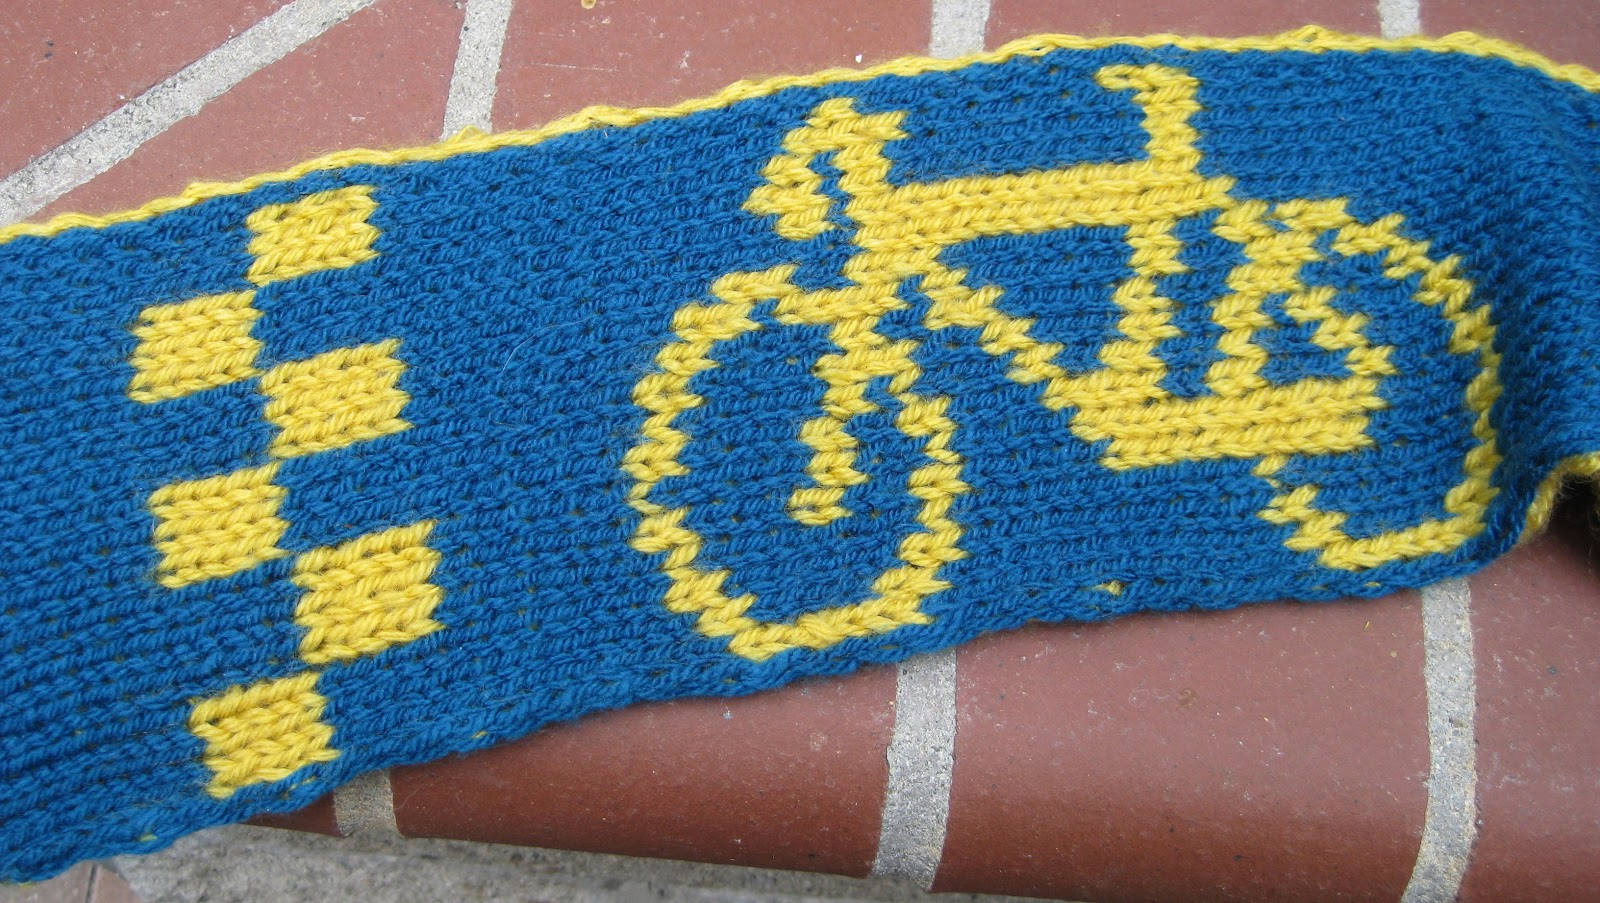 Card table inc a bicycle built for two at any rate it is a double knit scarf with a neat bike design at one end i adapted from a pattern i found on ravelry toms doubleknit bicycle hat bankloansurffo Image collections